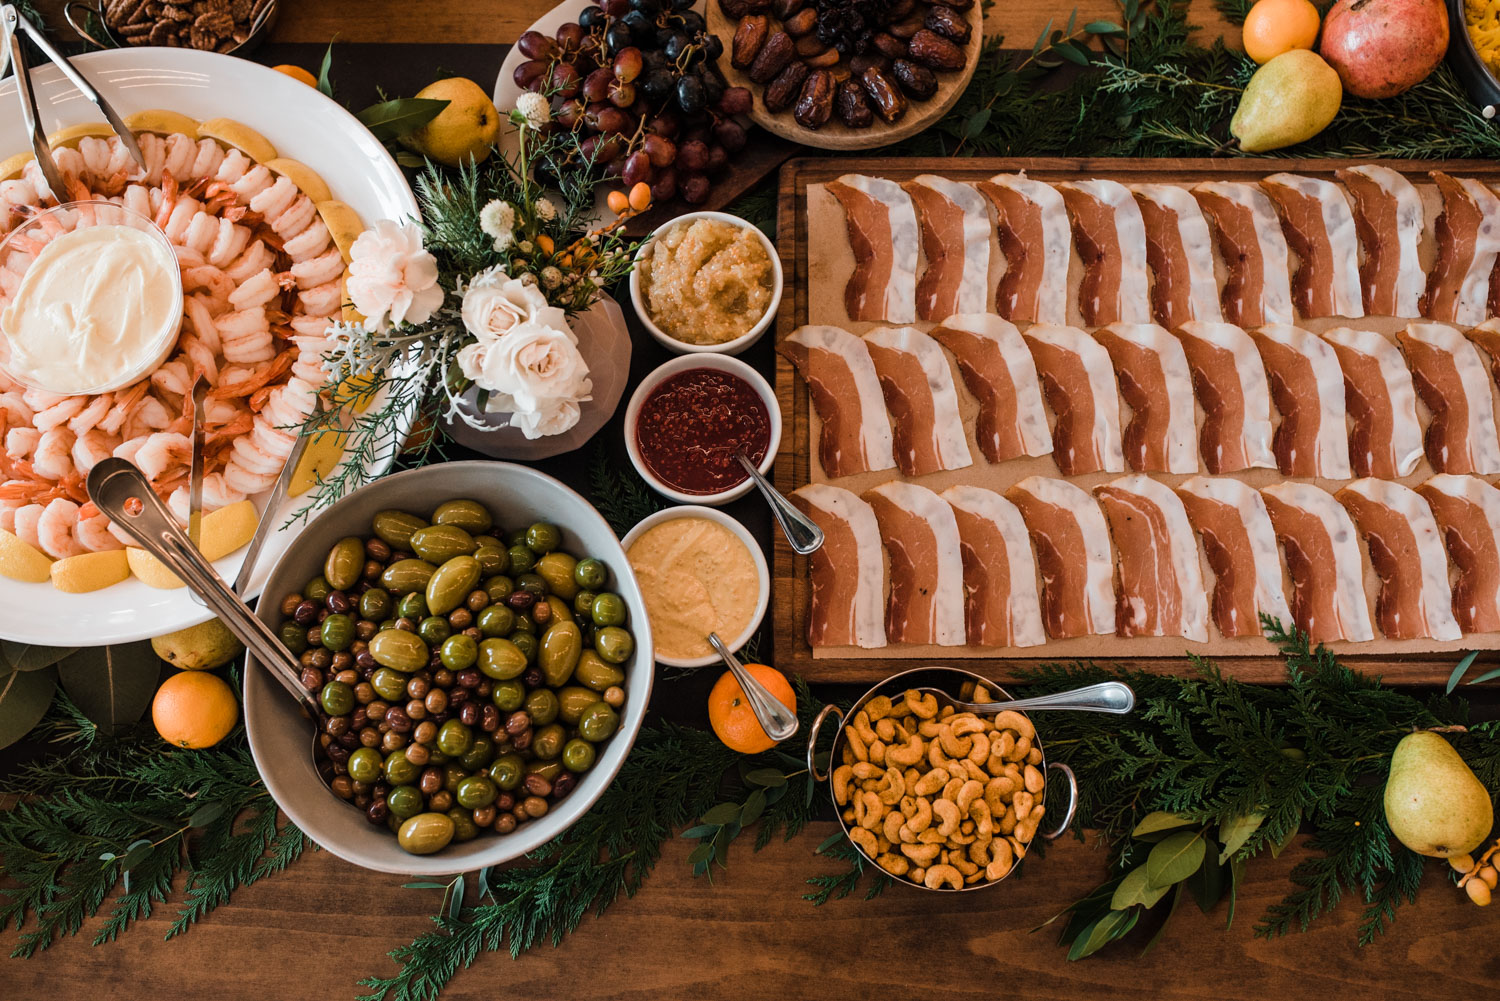 The Daily - 12.20.2018 - Catering-19-web-sized.jpg